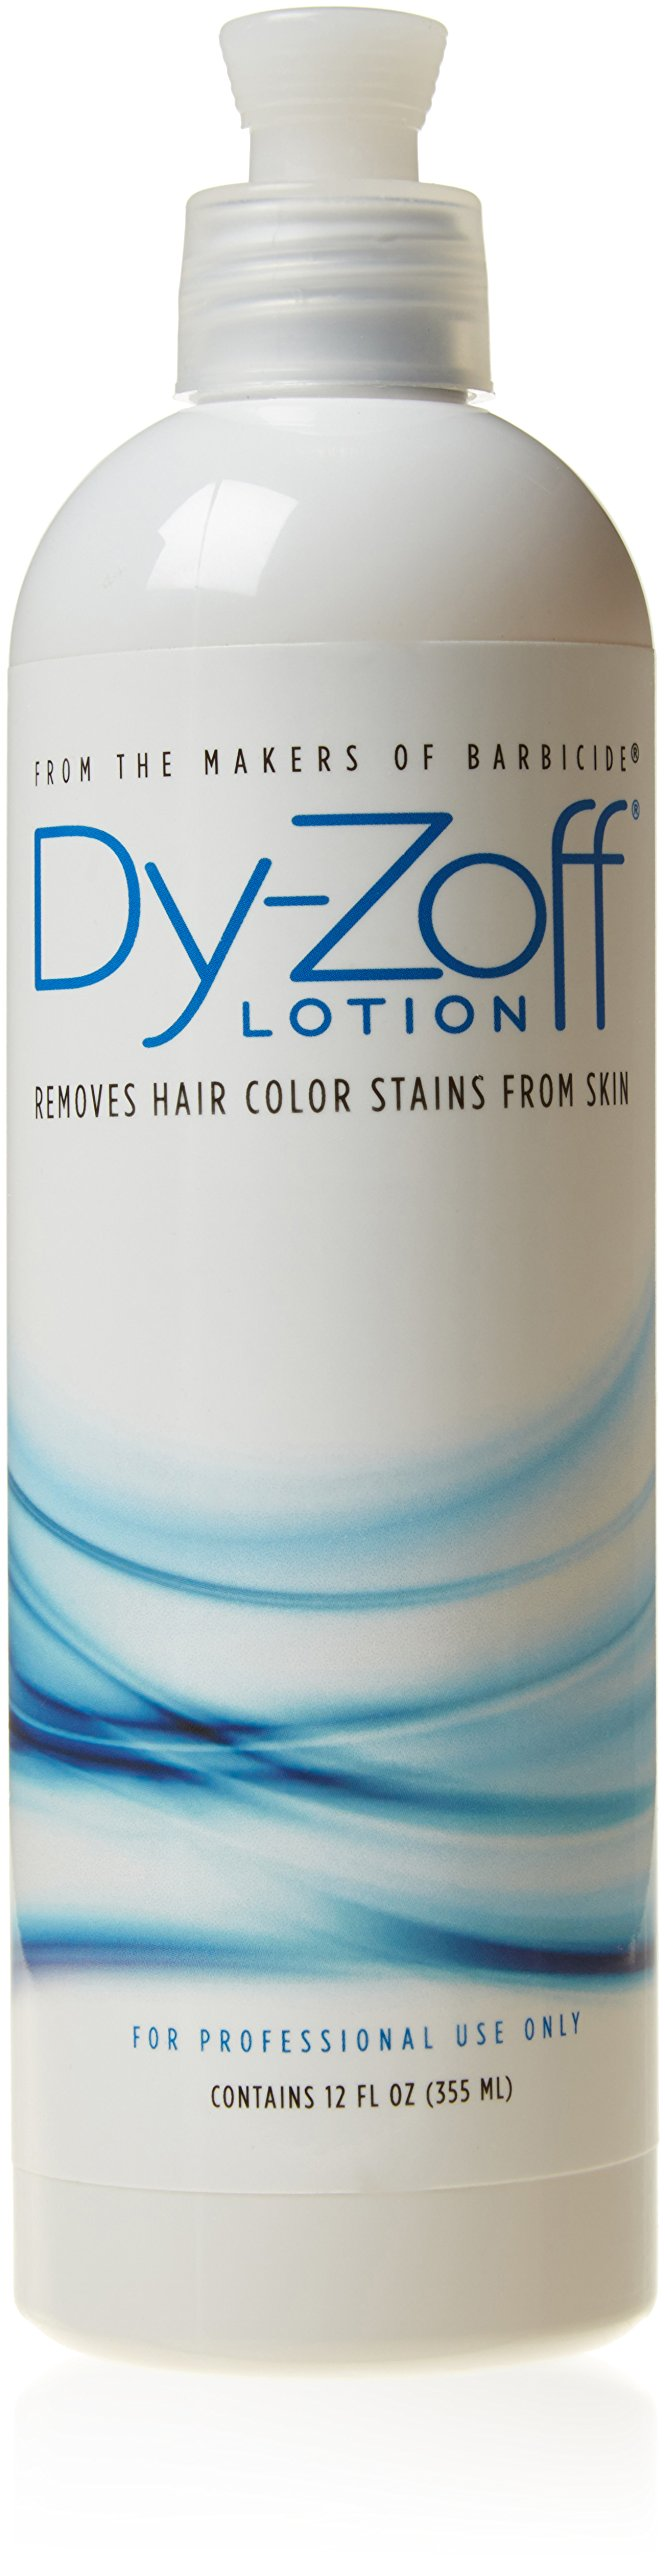 King Research Dy-Zoff Lotion 12 oz. by ICShopToday